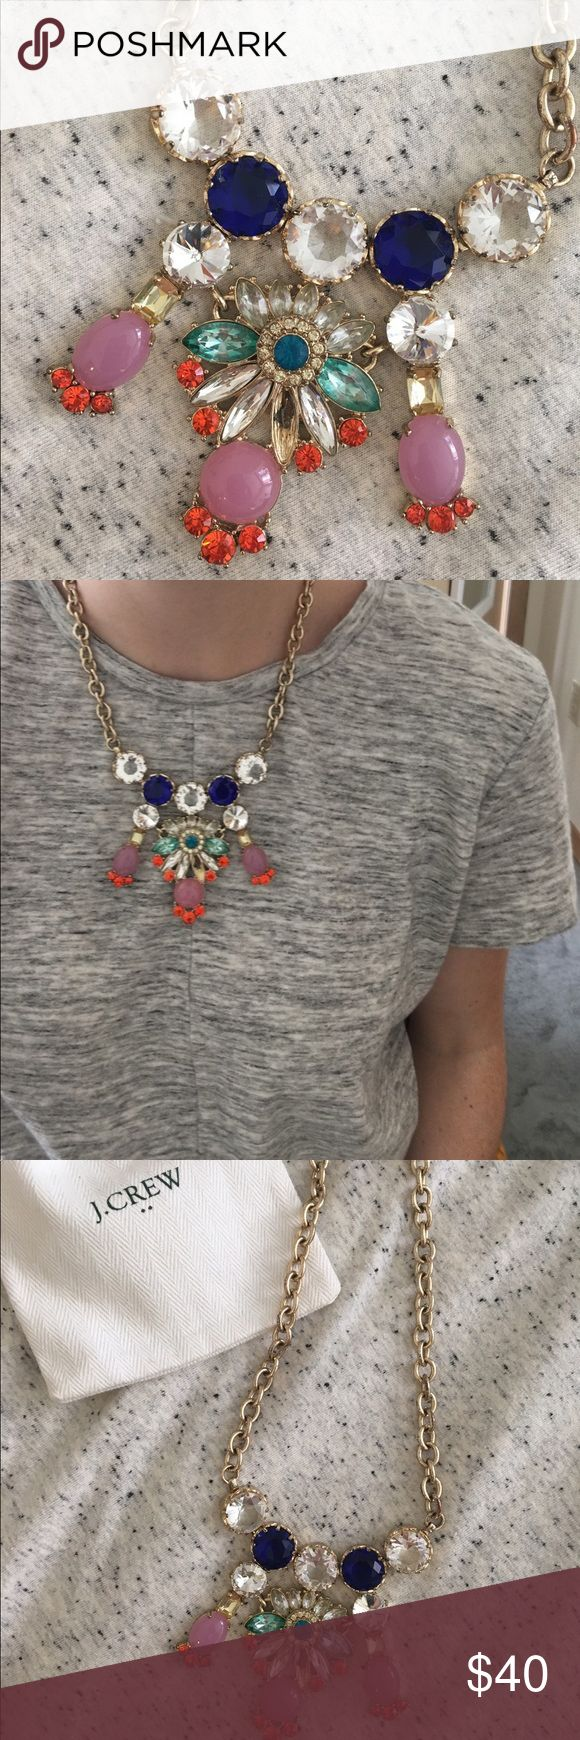 """J Crew Necklace STUNNING J Crew Crystal Necklace with clear, pink, teal and dark blue crystals. 18"""" chain with 3"""" adjustable. Gold chain. J. Crew Jewelry Necklaces"""